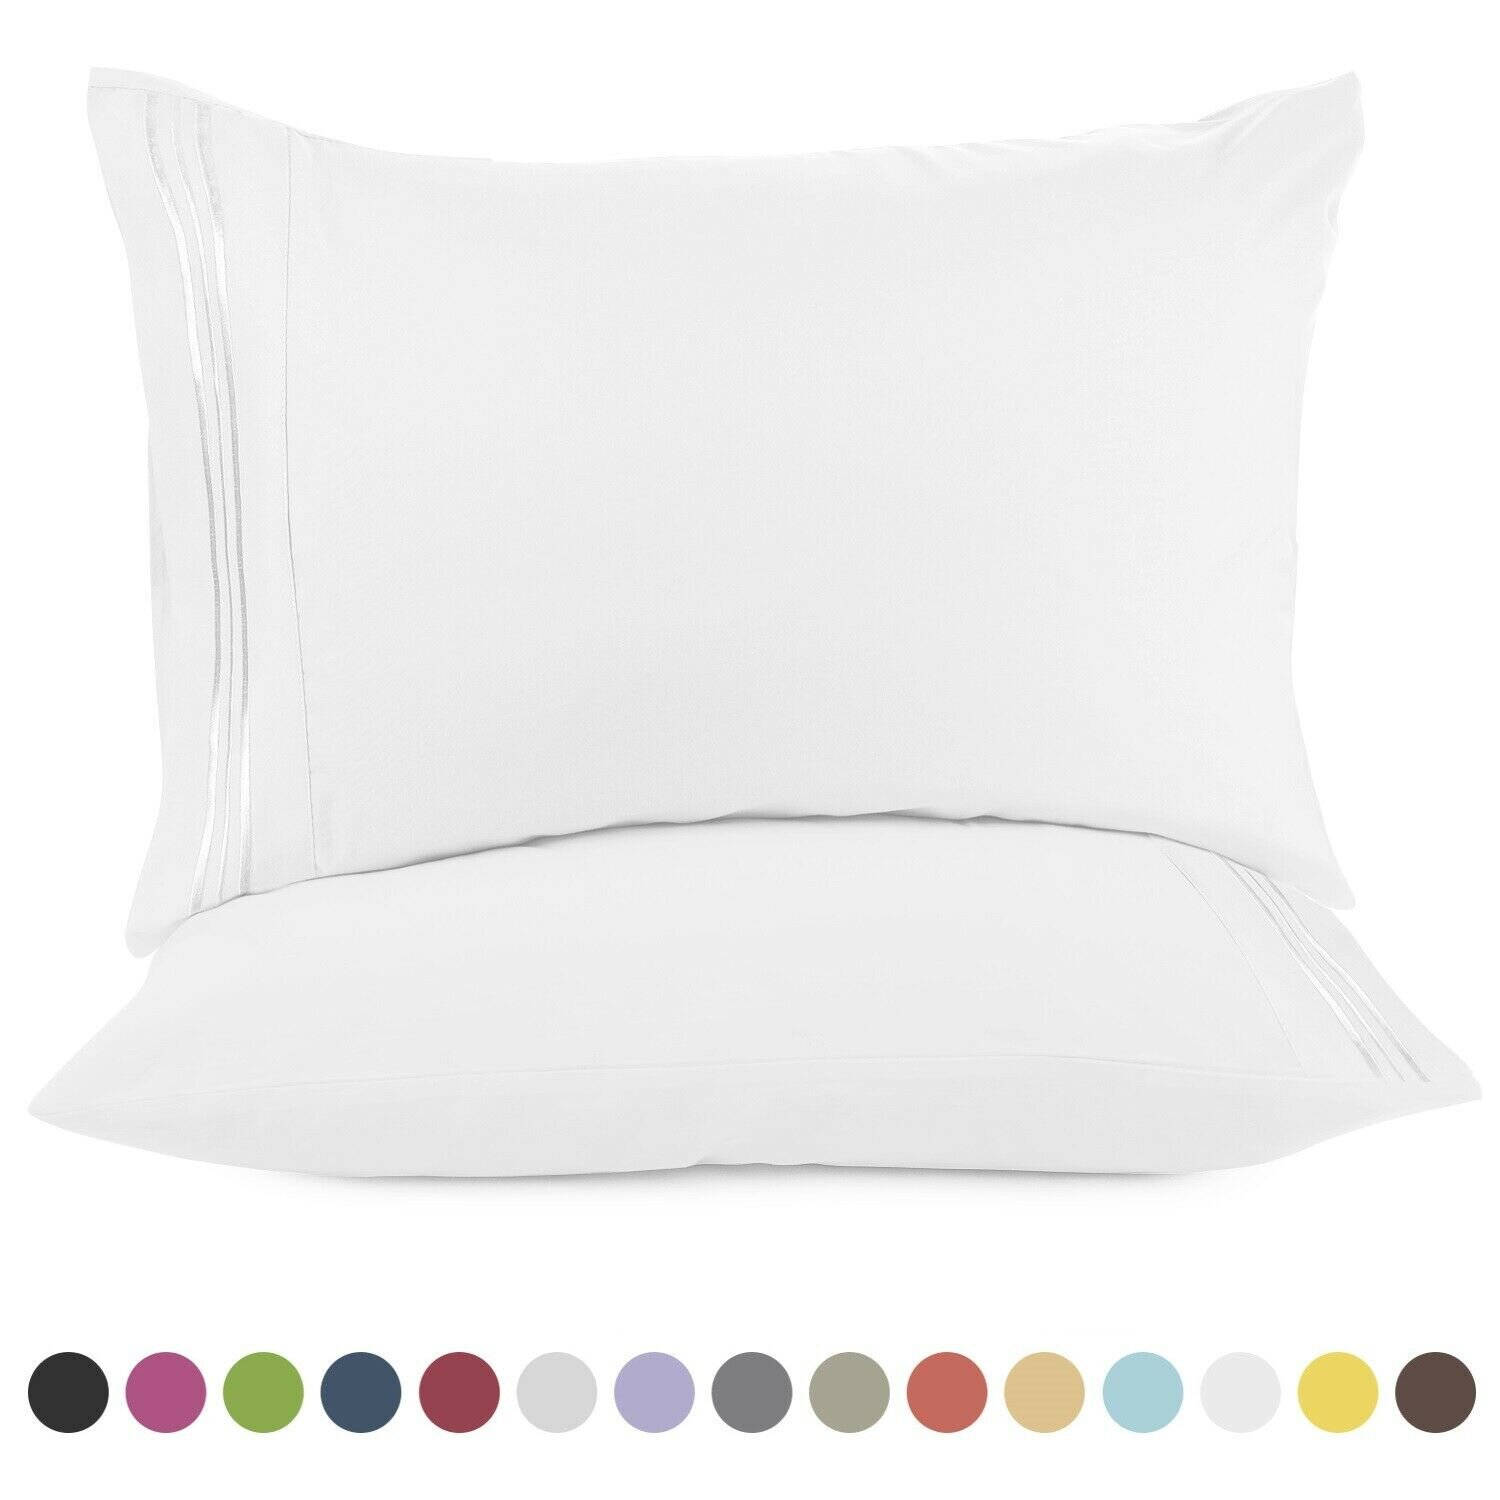 1800 Pillow Case Set (Set of 2) - Choice of Queen or King   Reg Price: $30   Today's Price: $5 (83% off!)    via eBay